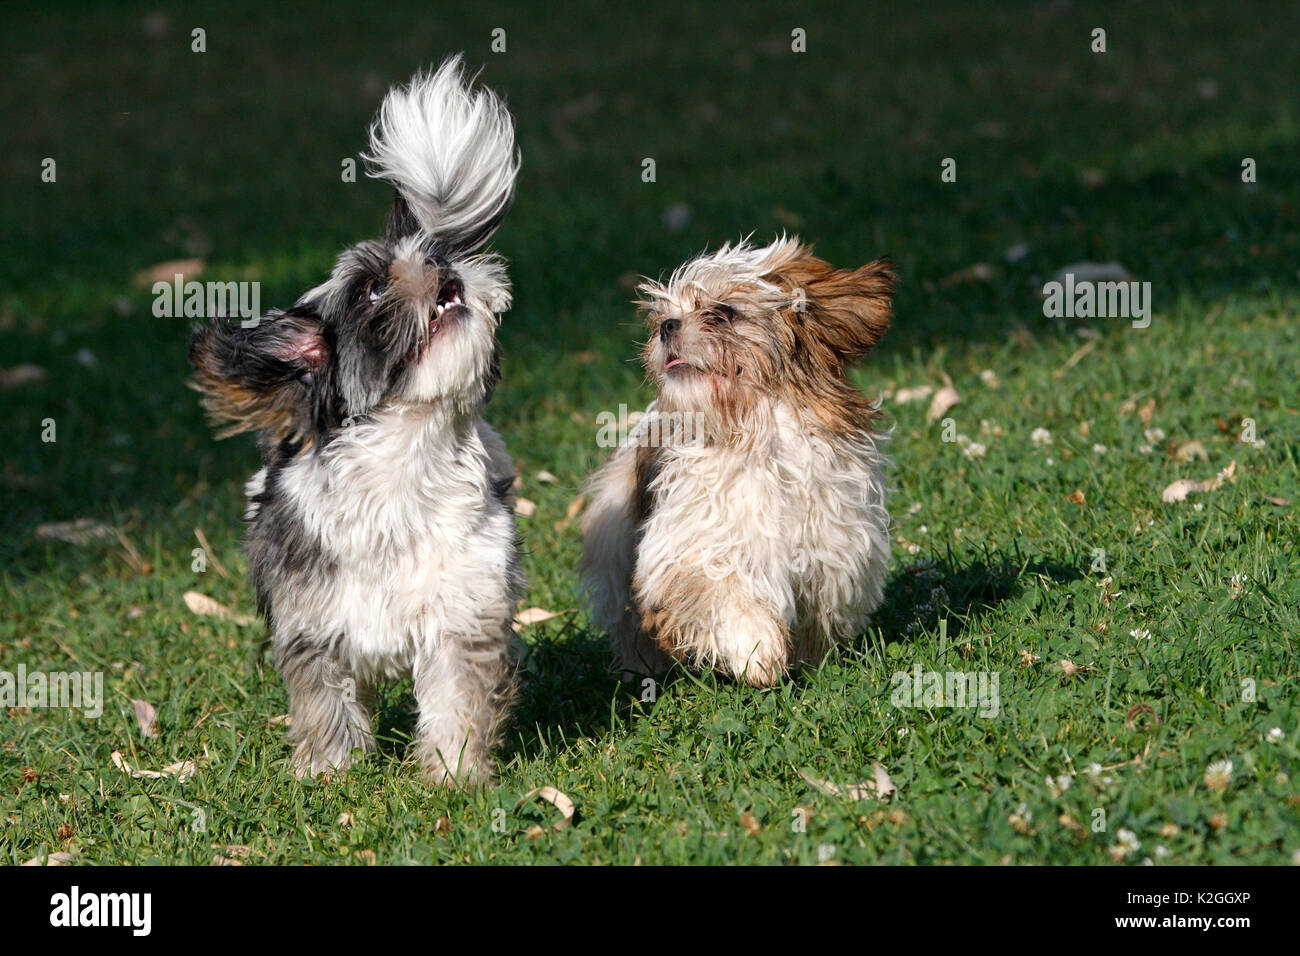 Shih tzu dogs (Canis familiaris) male and female, aged 4 years,  playing and running in field, Var, Provence, France, August - Stock Image